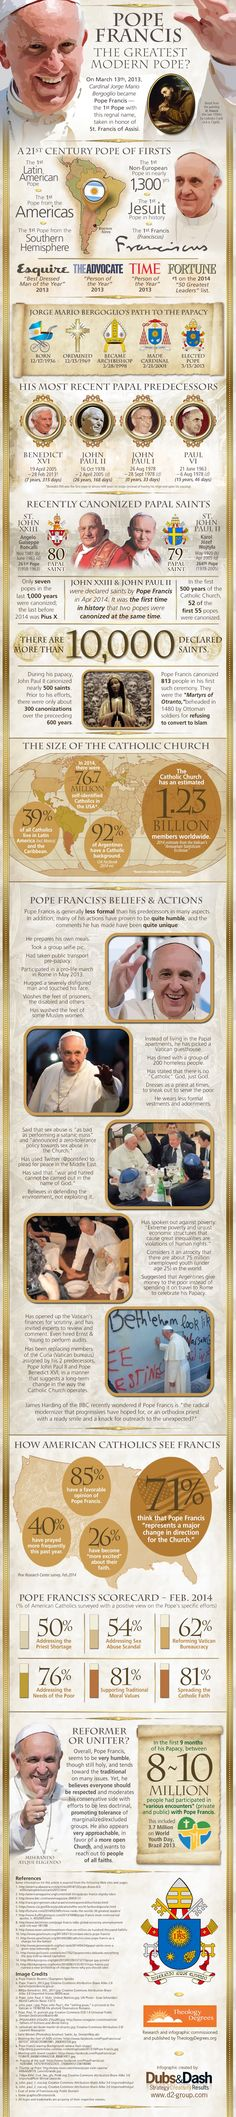 Pope Infographic - he isn't changing the direction of The Church. The Church is heated in the same direction that it had for the last 2000 years. Other than that, I agree with this.